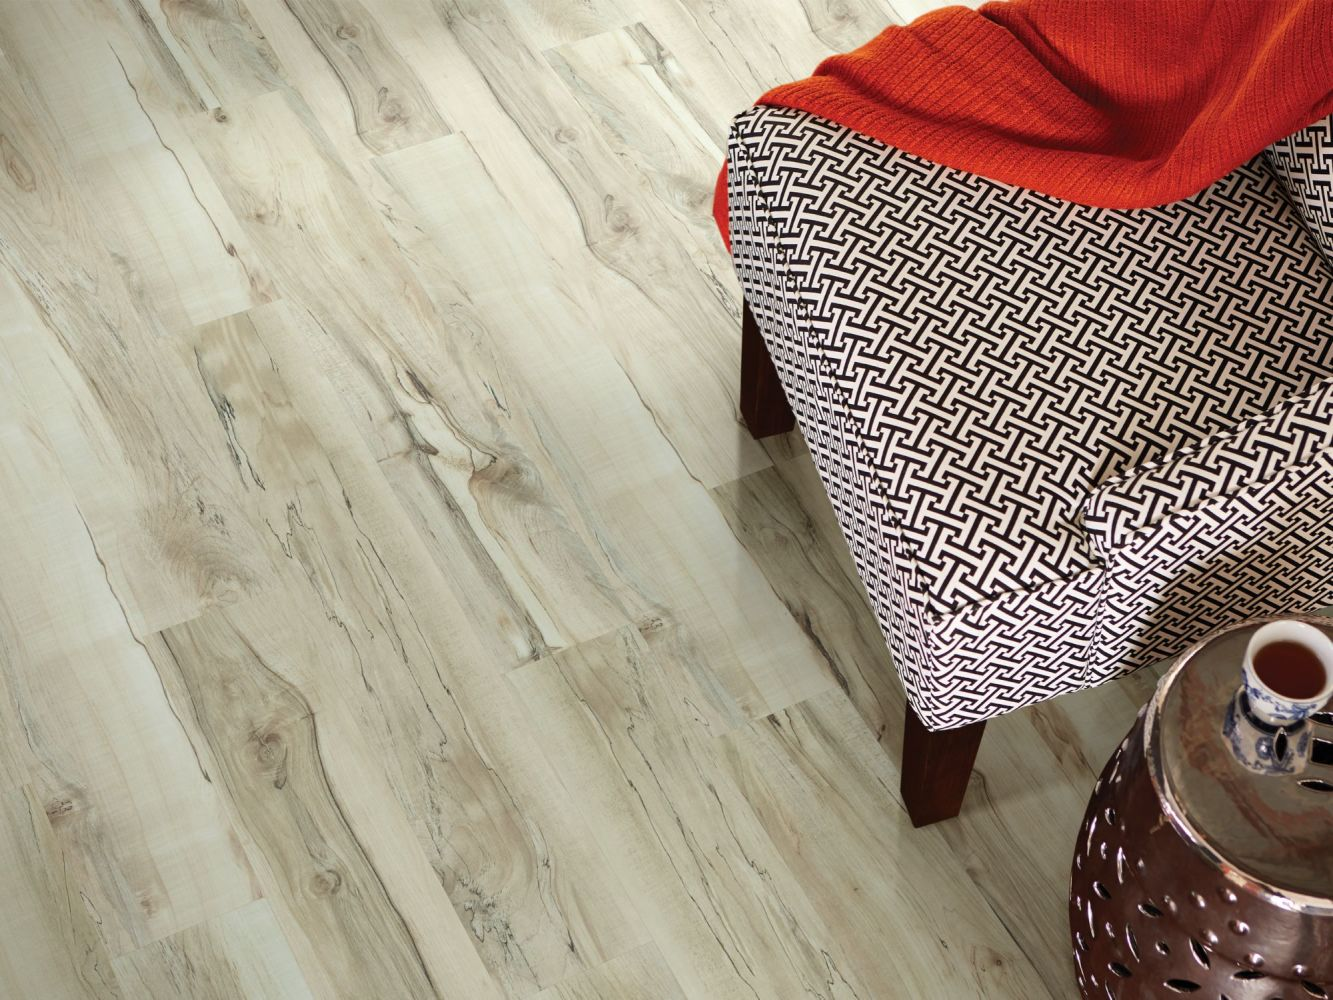 Shaw Floors Resilient Property Solutions Brio Plus Mineral Maple 00297_VE285